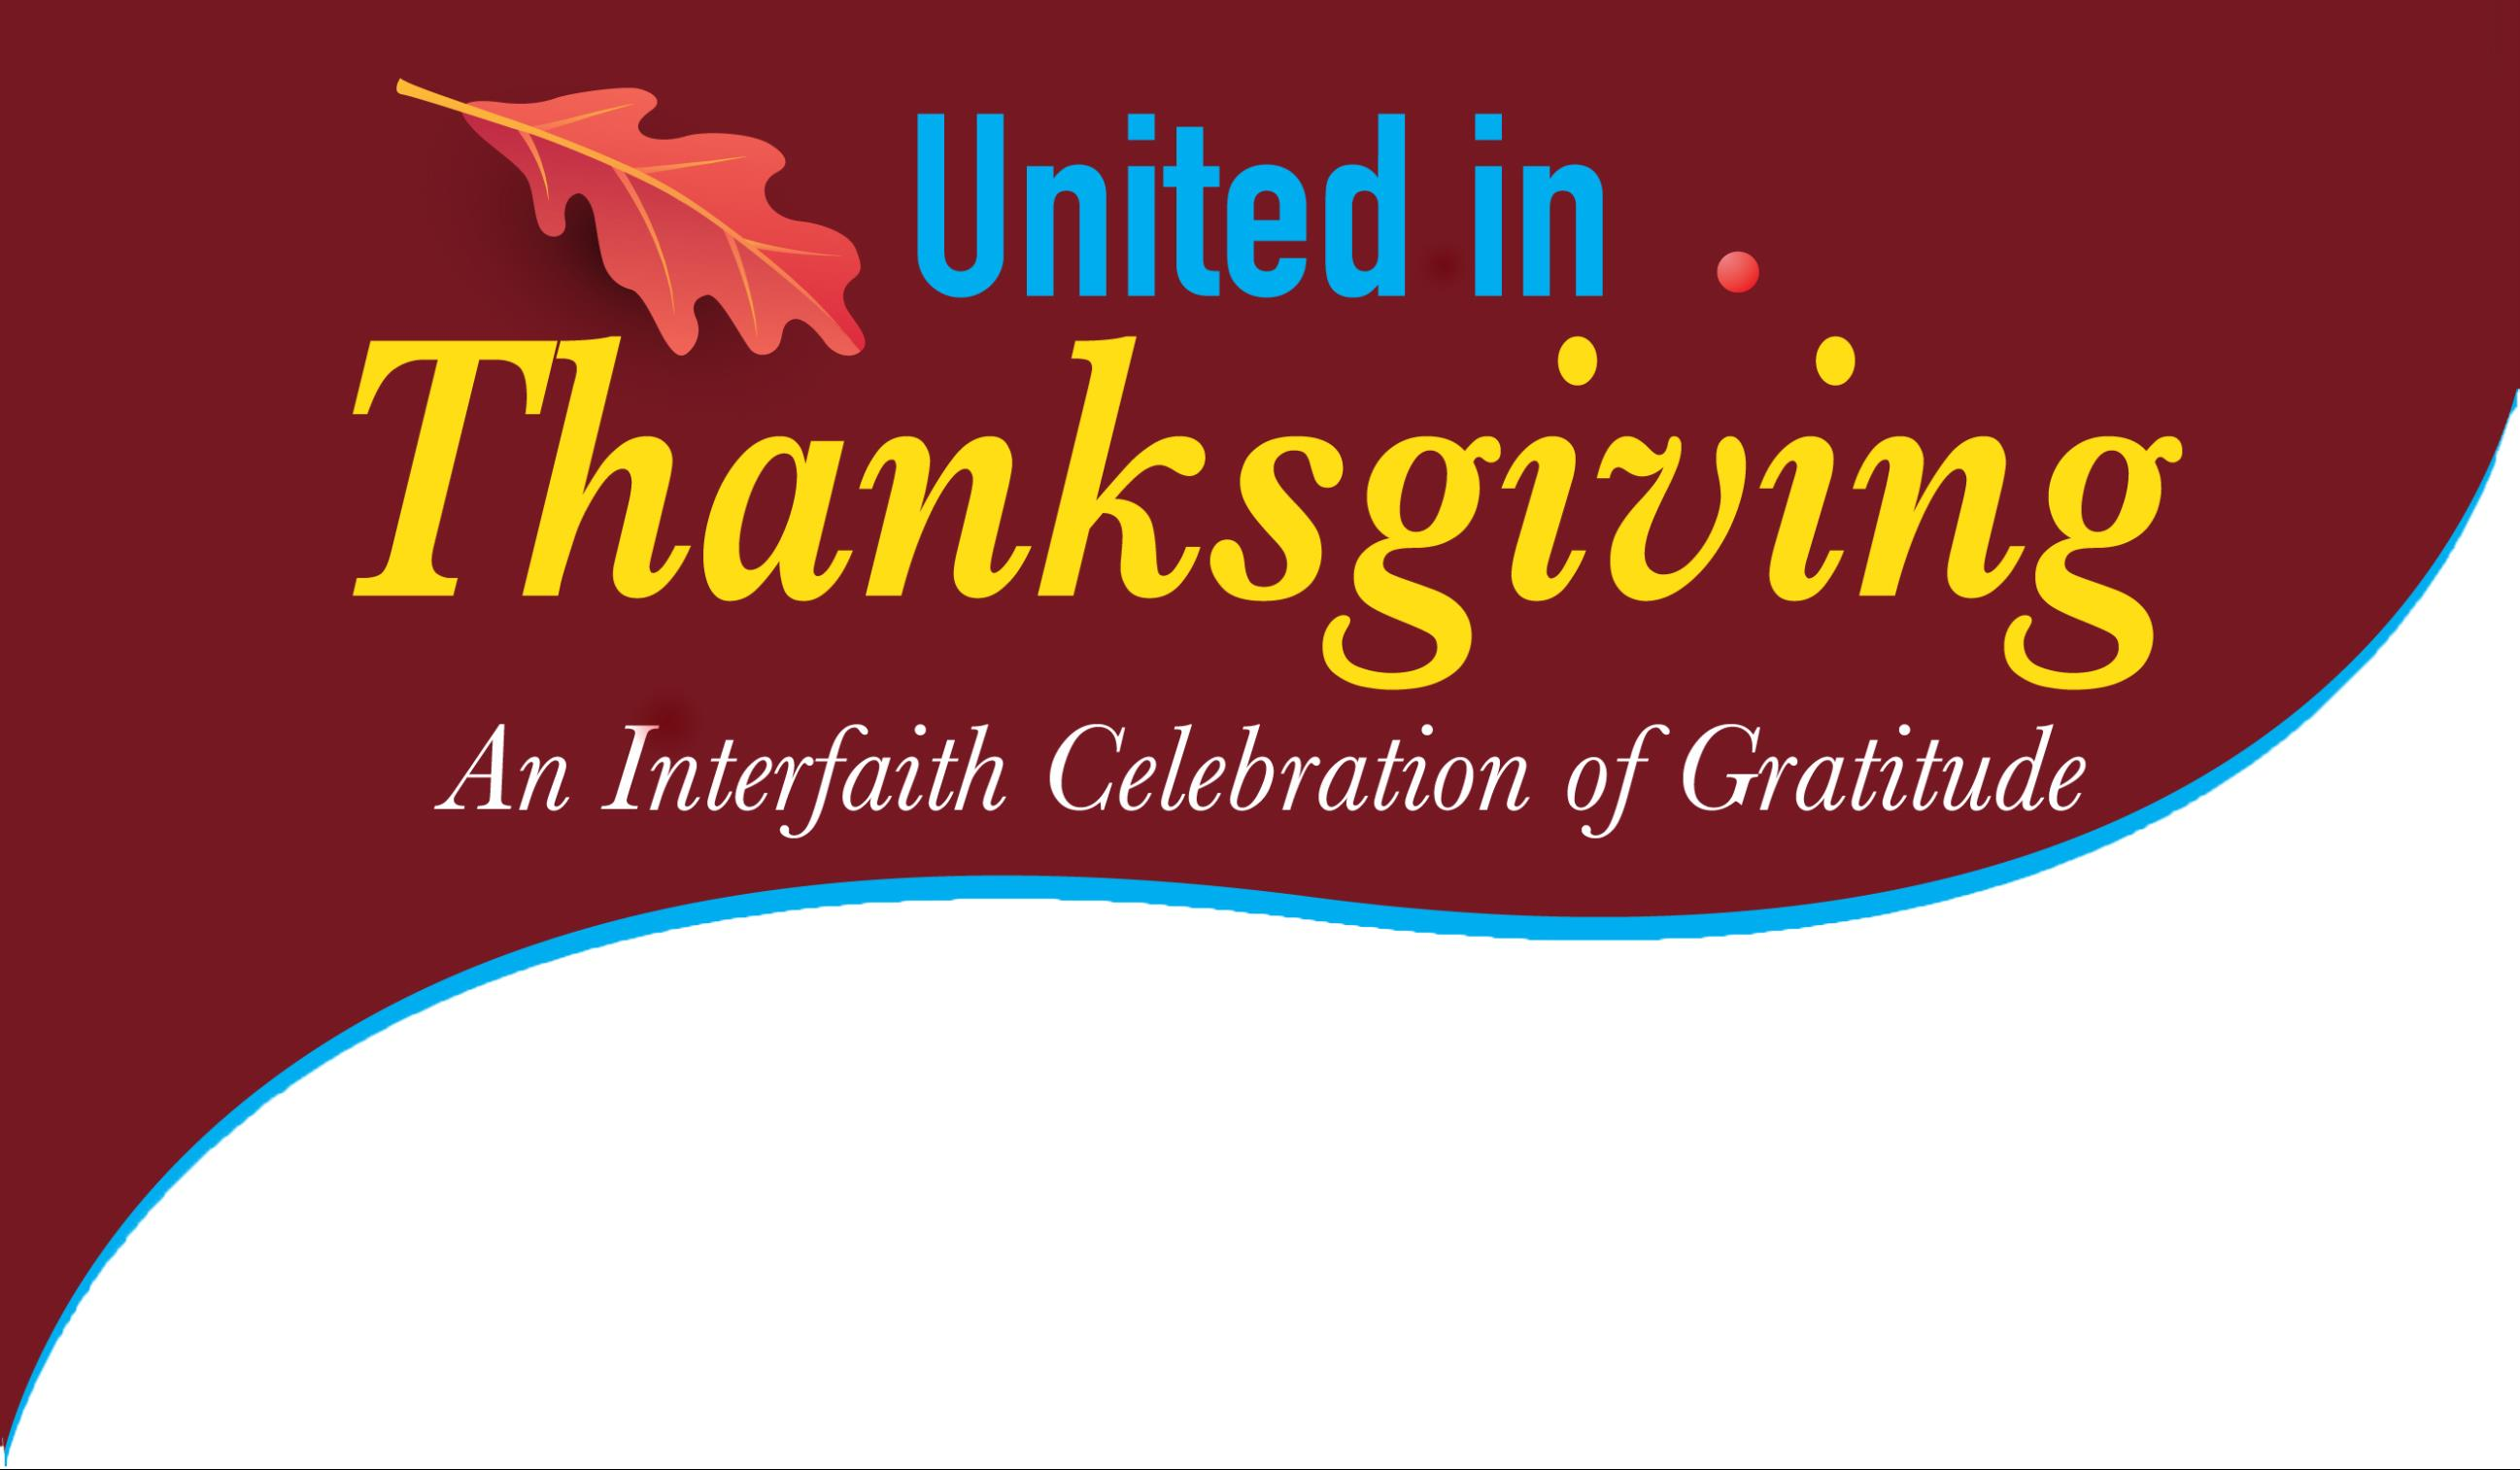 Different Faiths 'United in Thanksgiving'